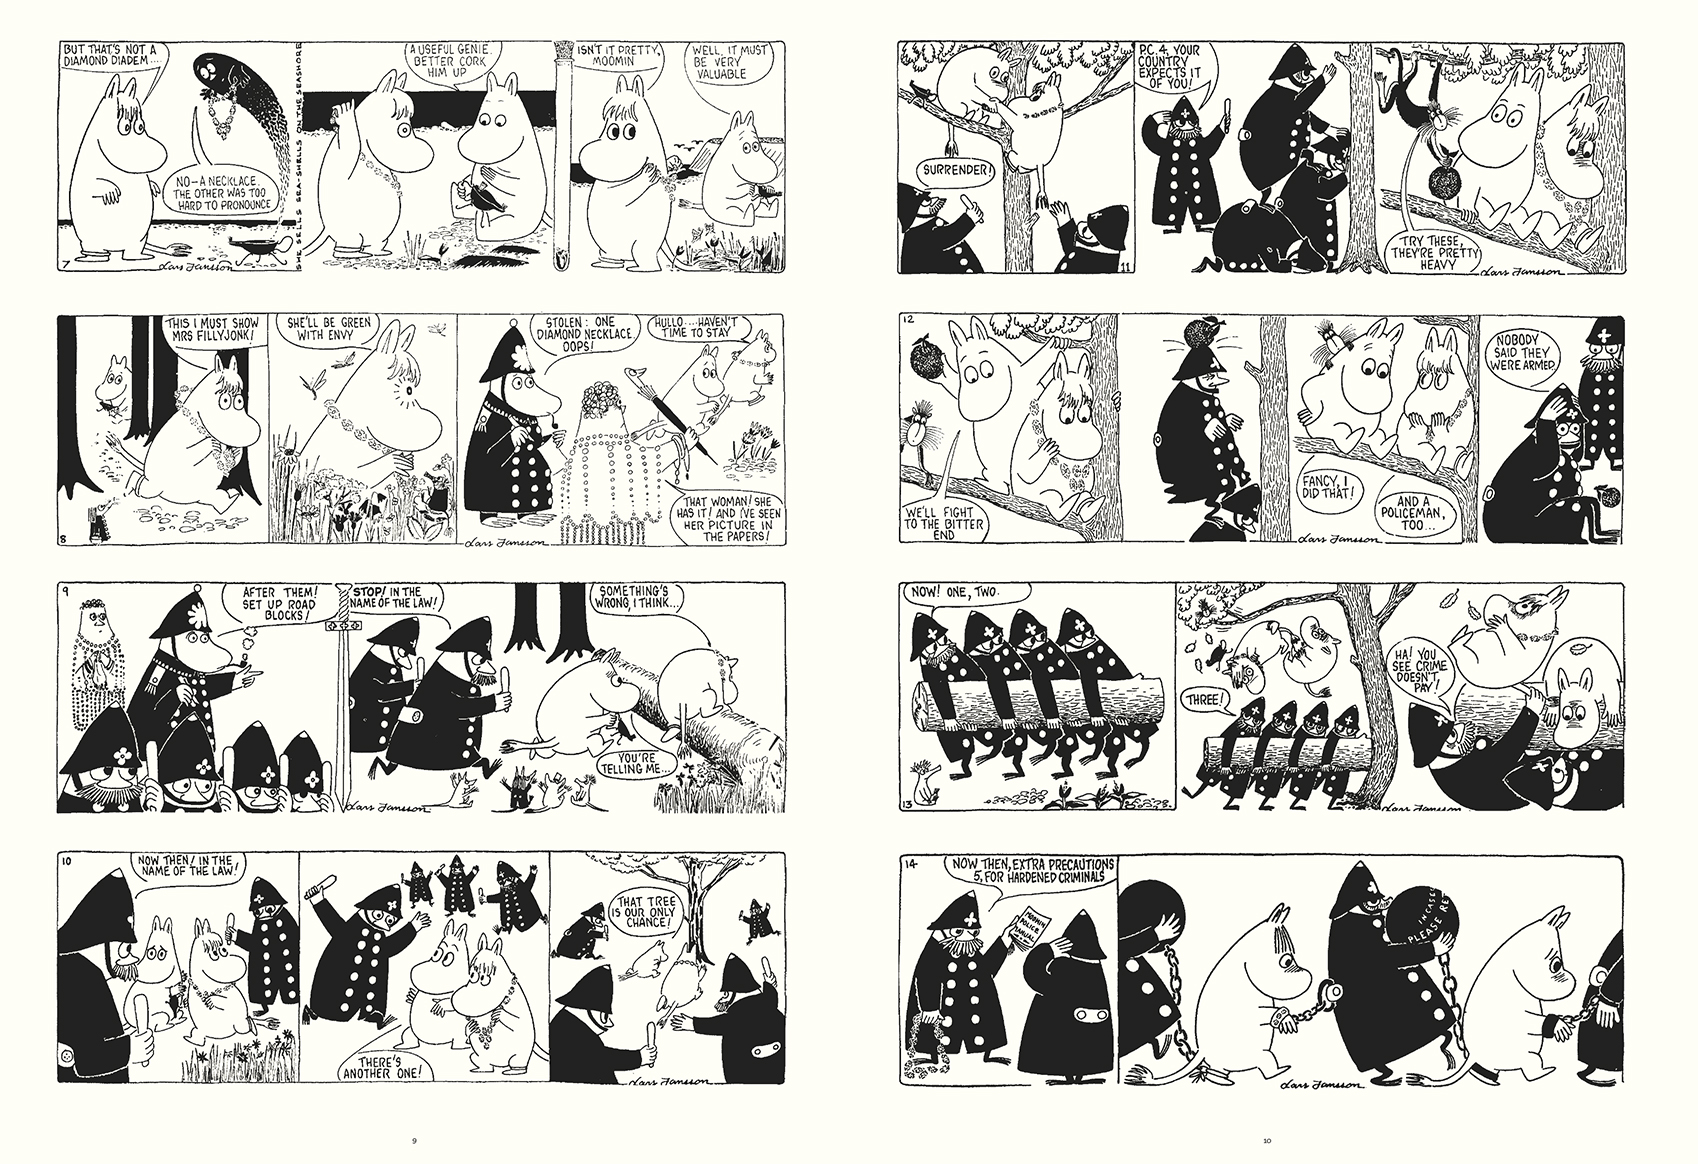 Moomin The Complete Lars Jansson Book 6 review